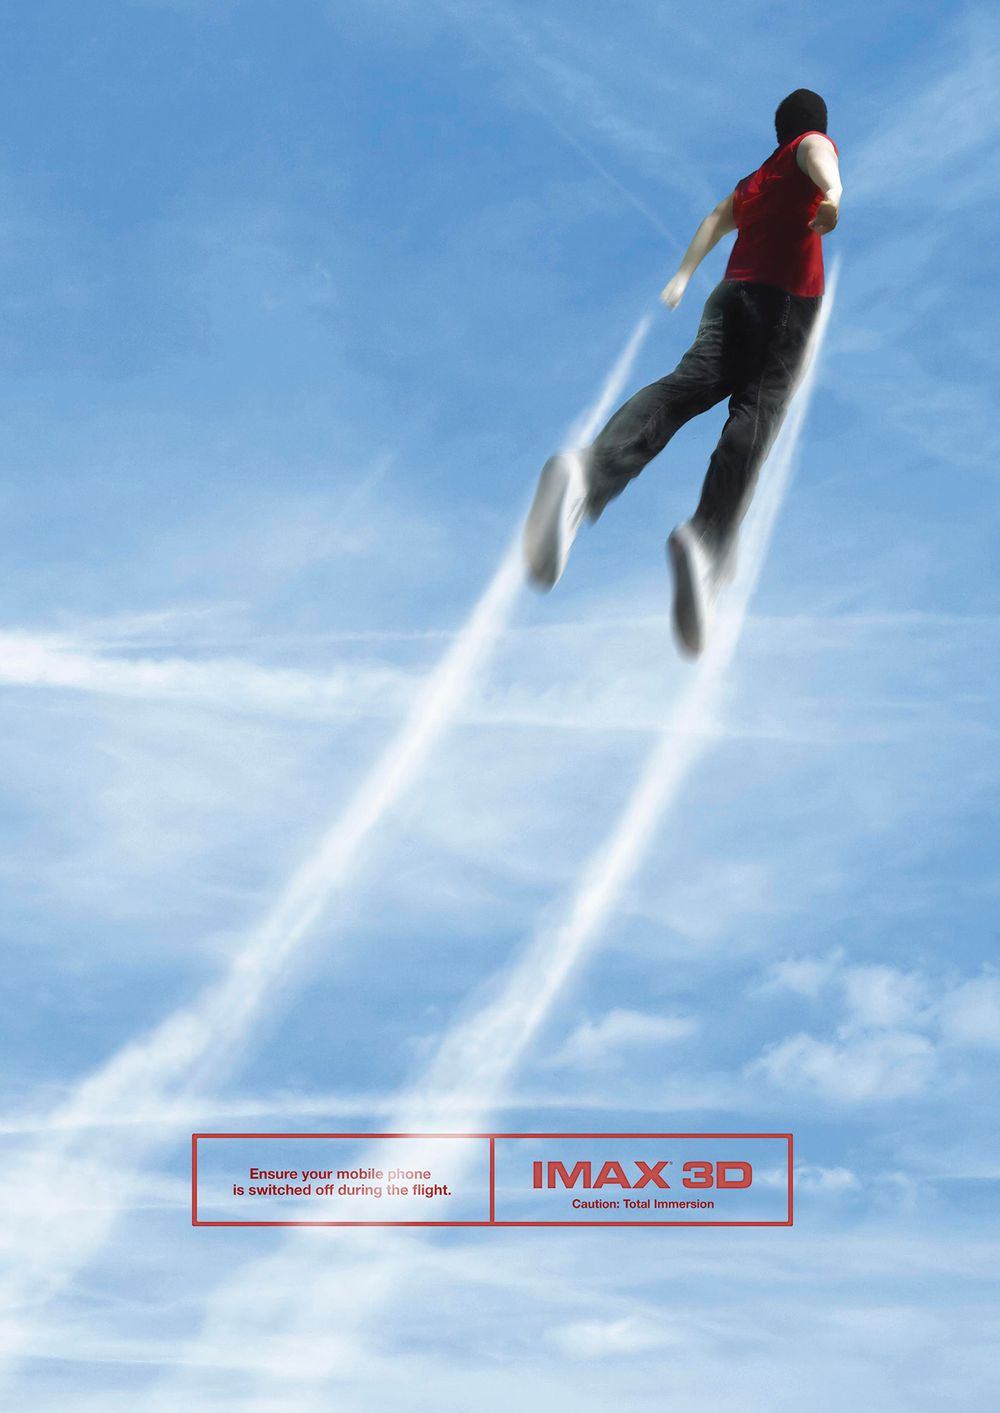 Jet pack Imax theater ad image